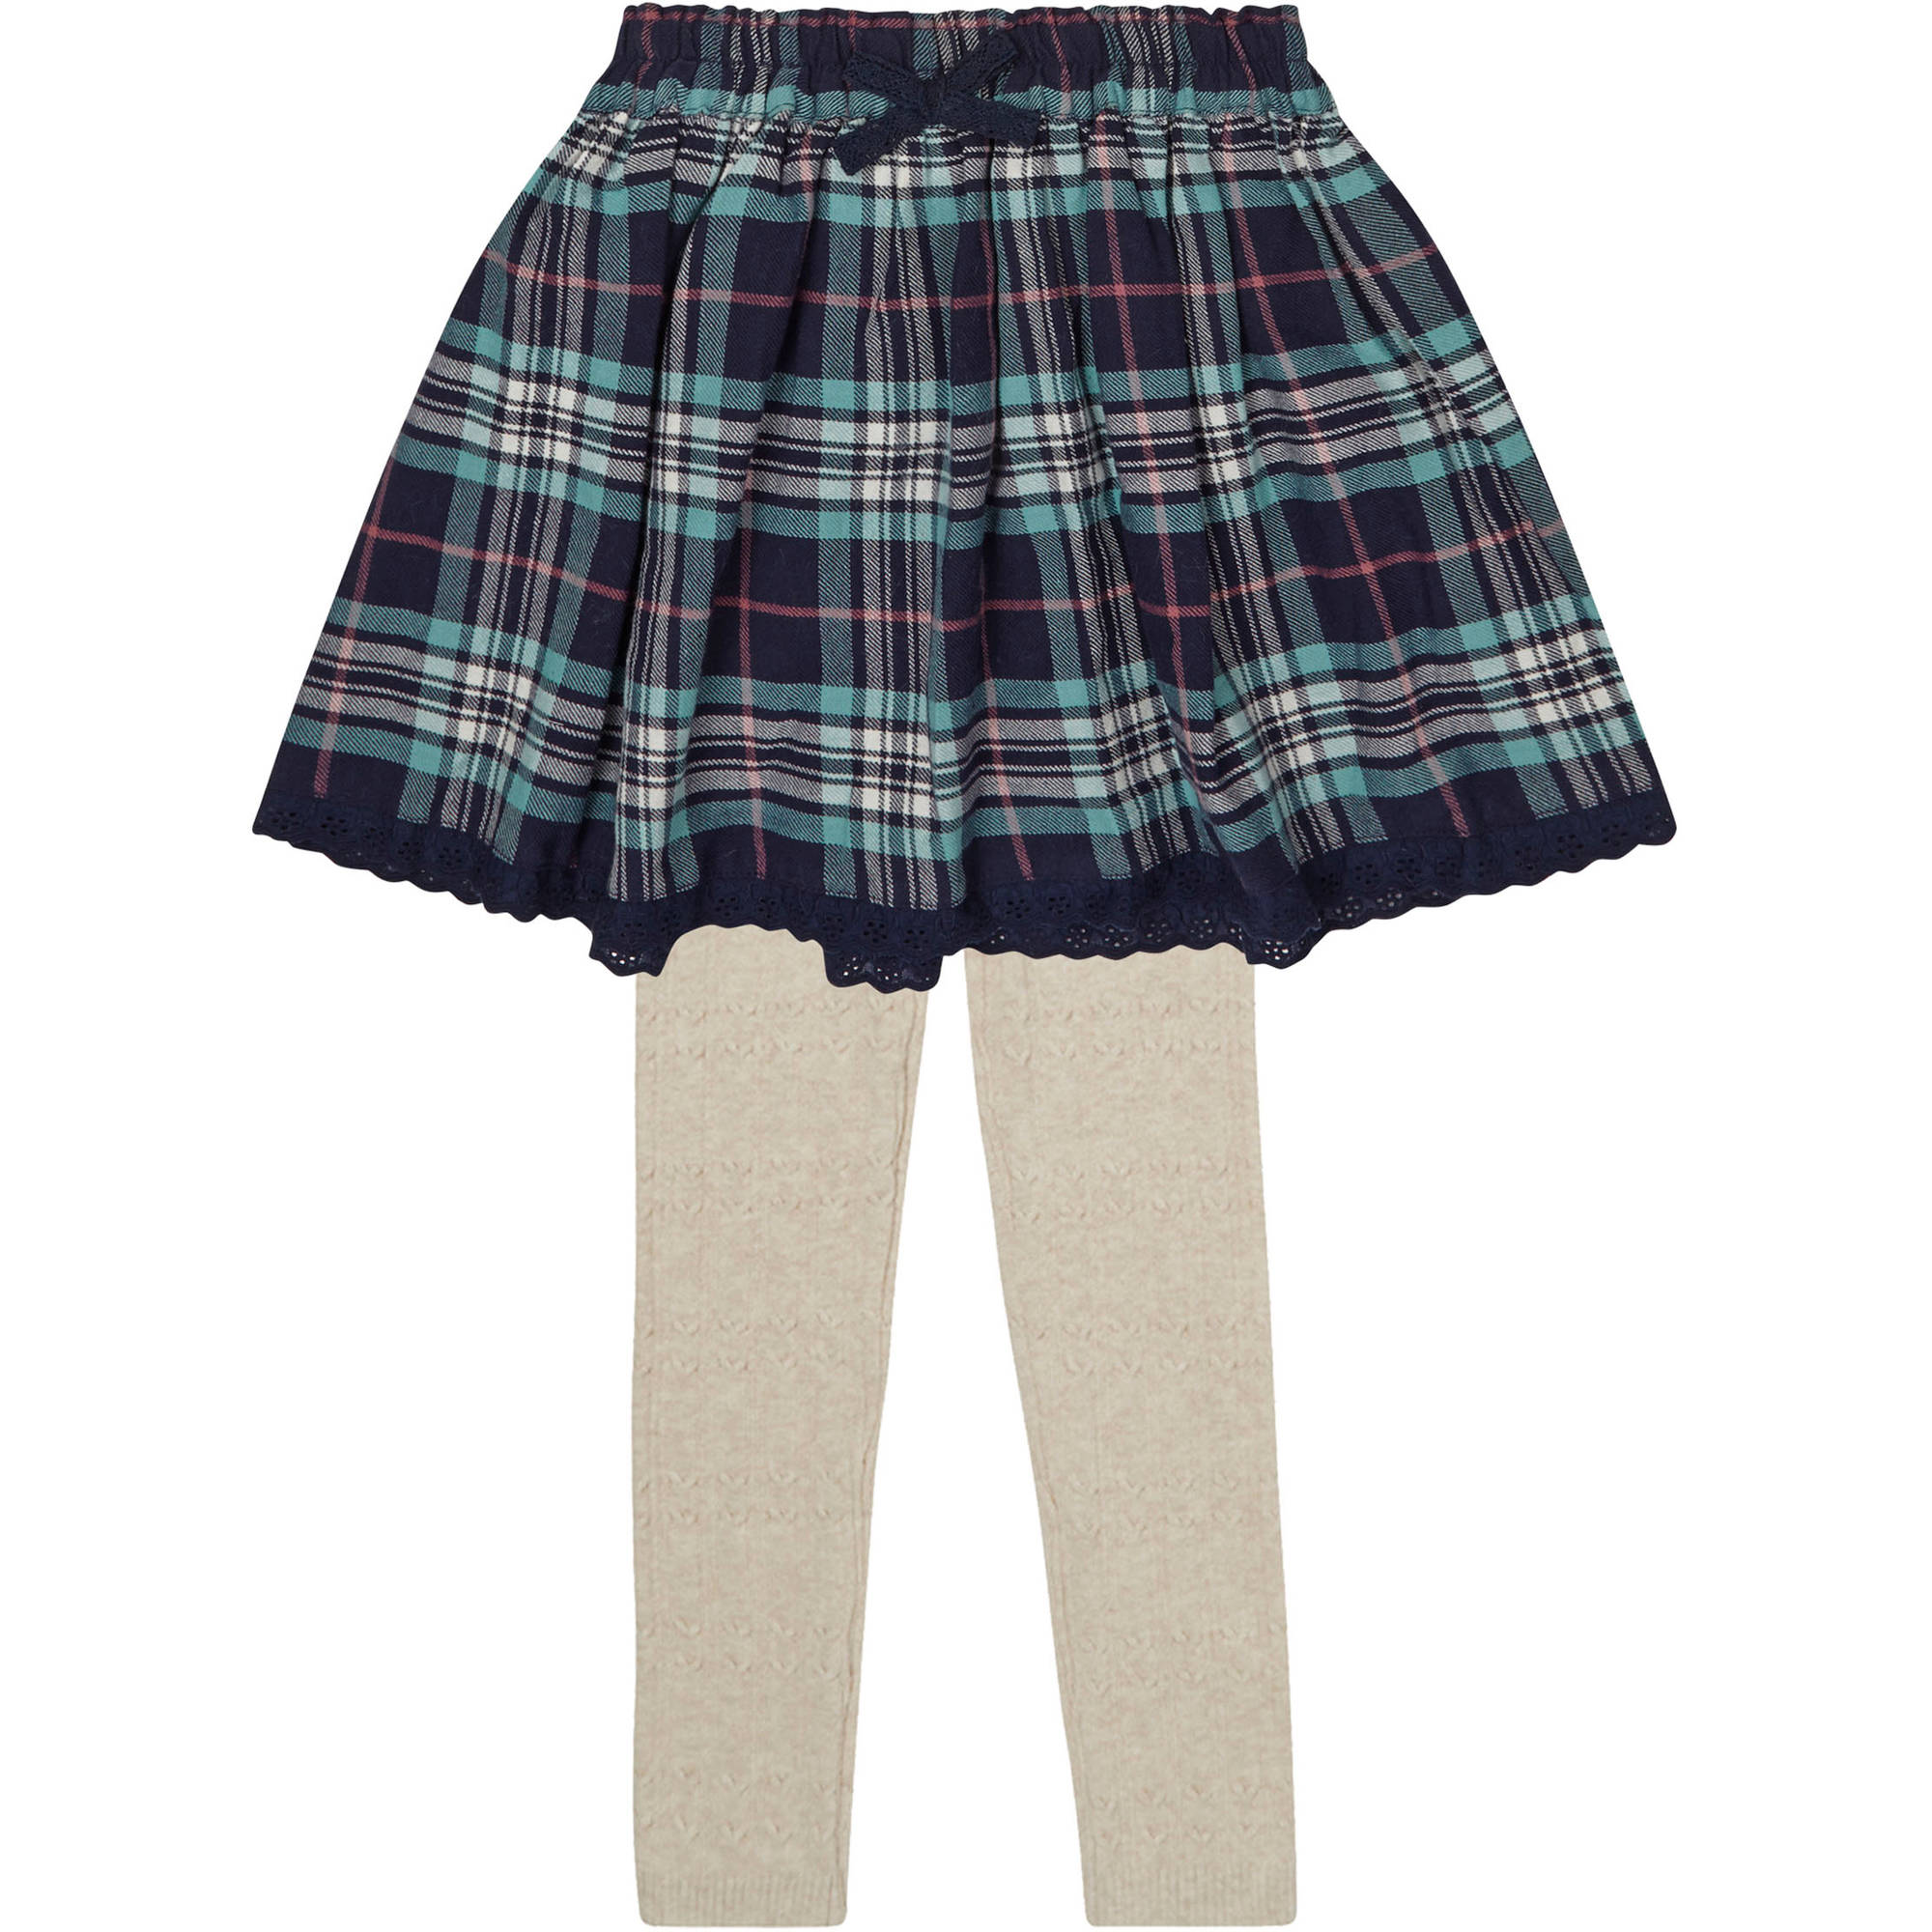 Baby Toddler Girl Skirt With Matching Tights